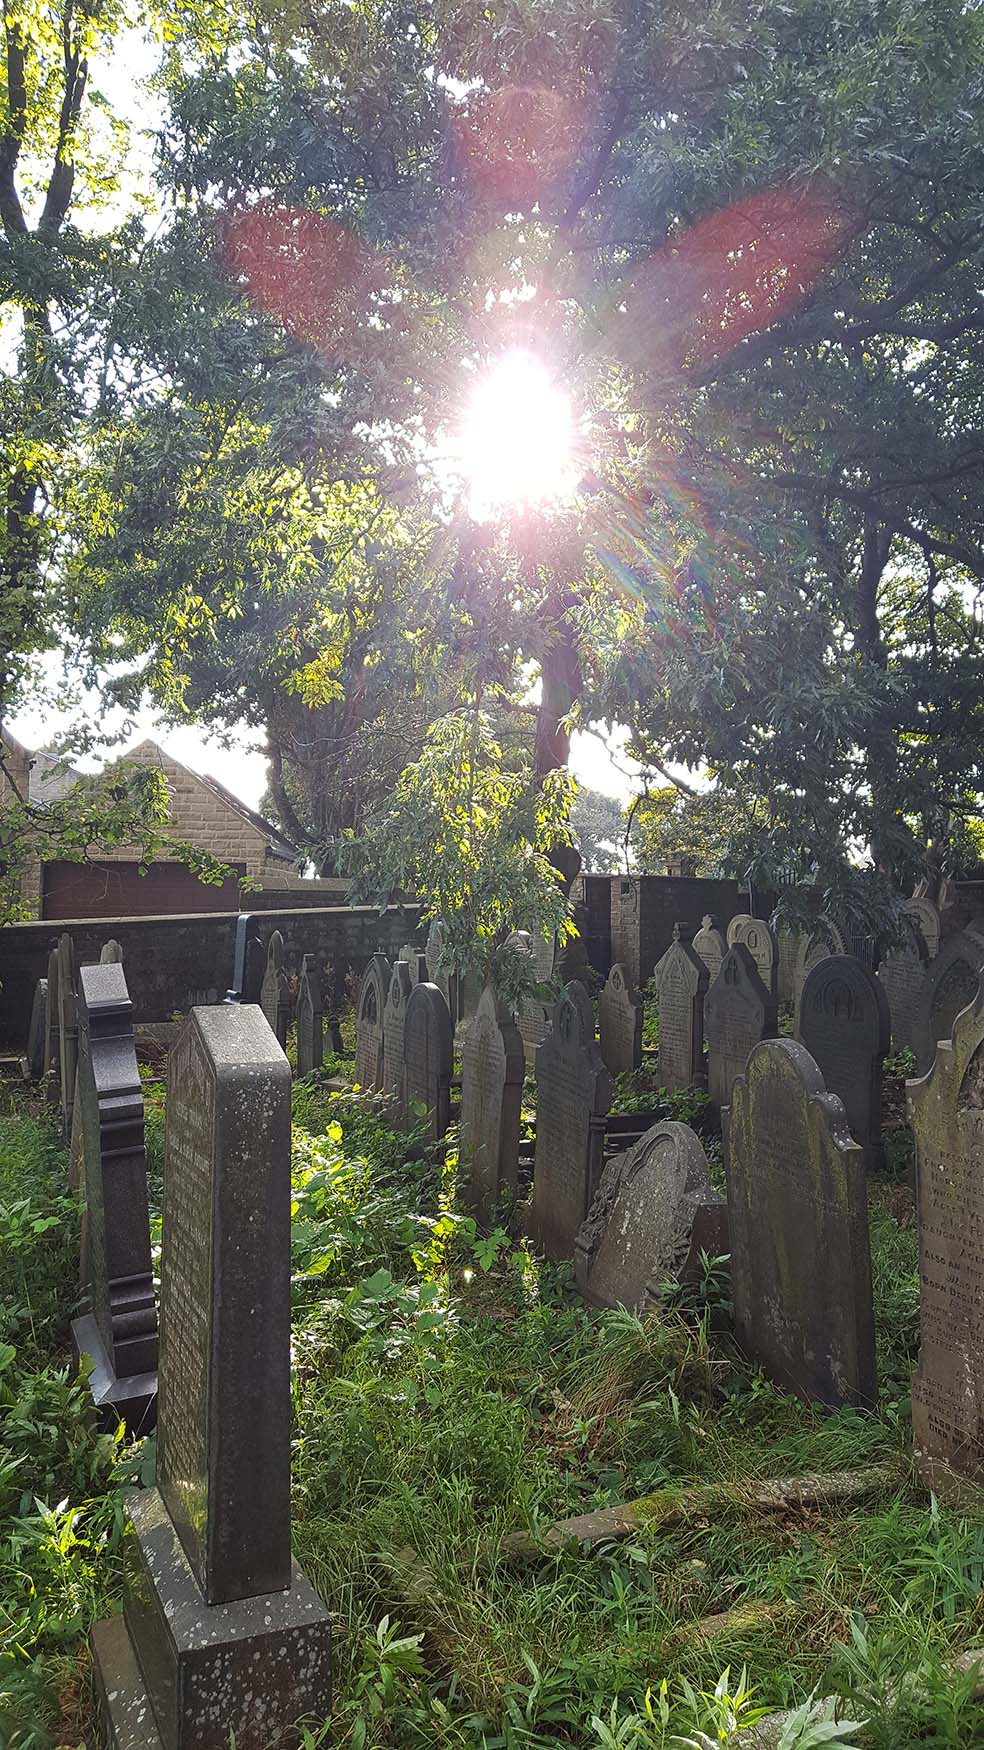 Searching for Sylvia Plath, St Thomas Church graveyard, Heptonstall